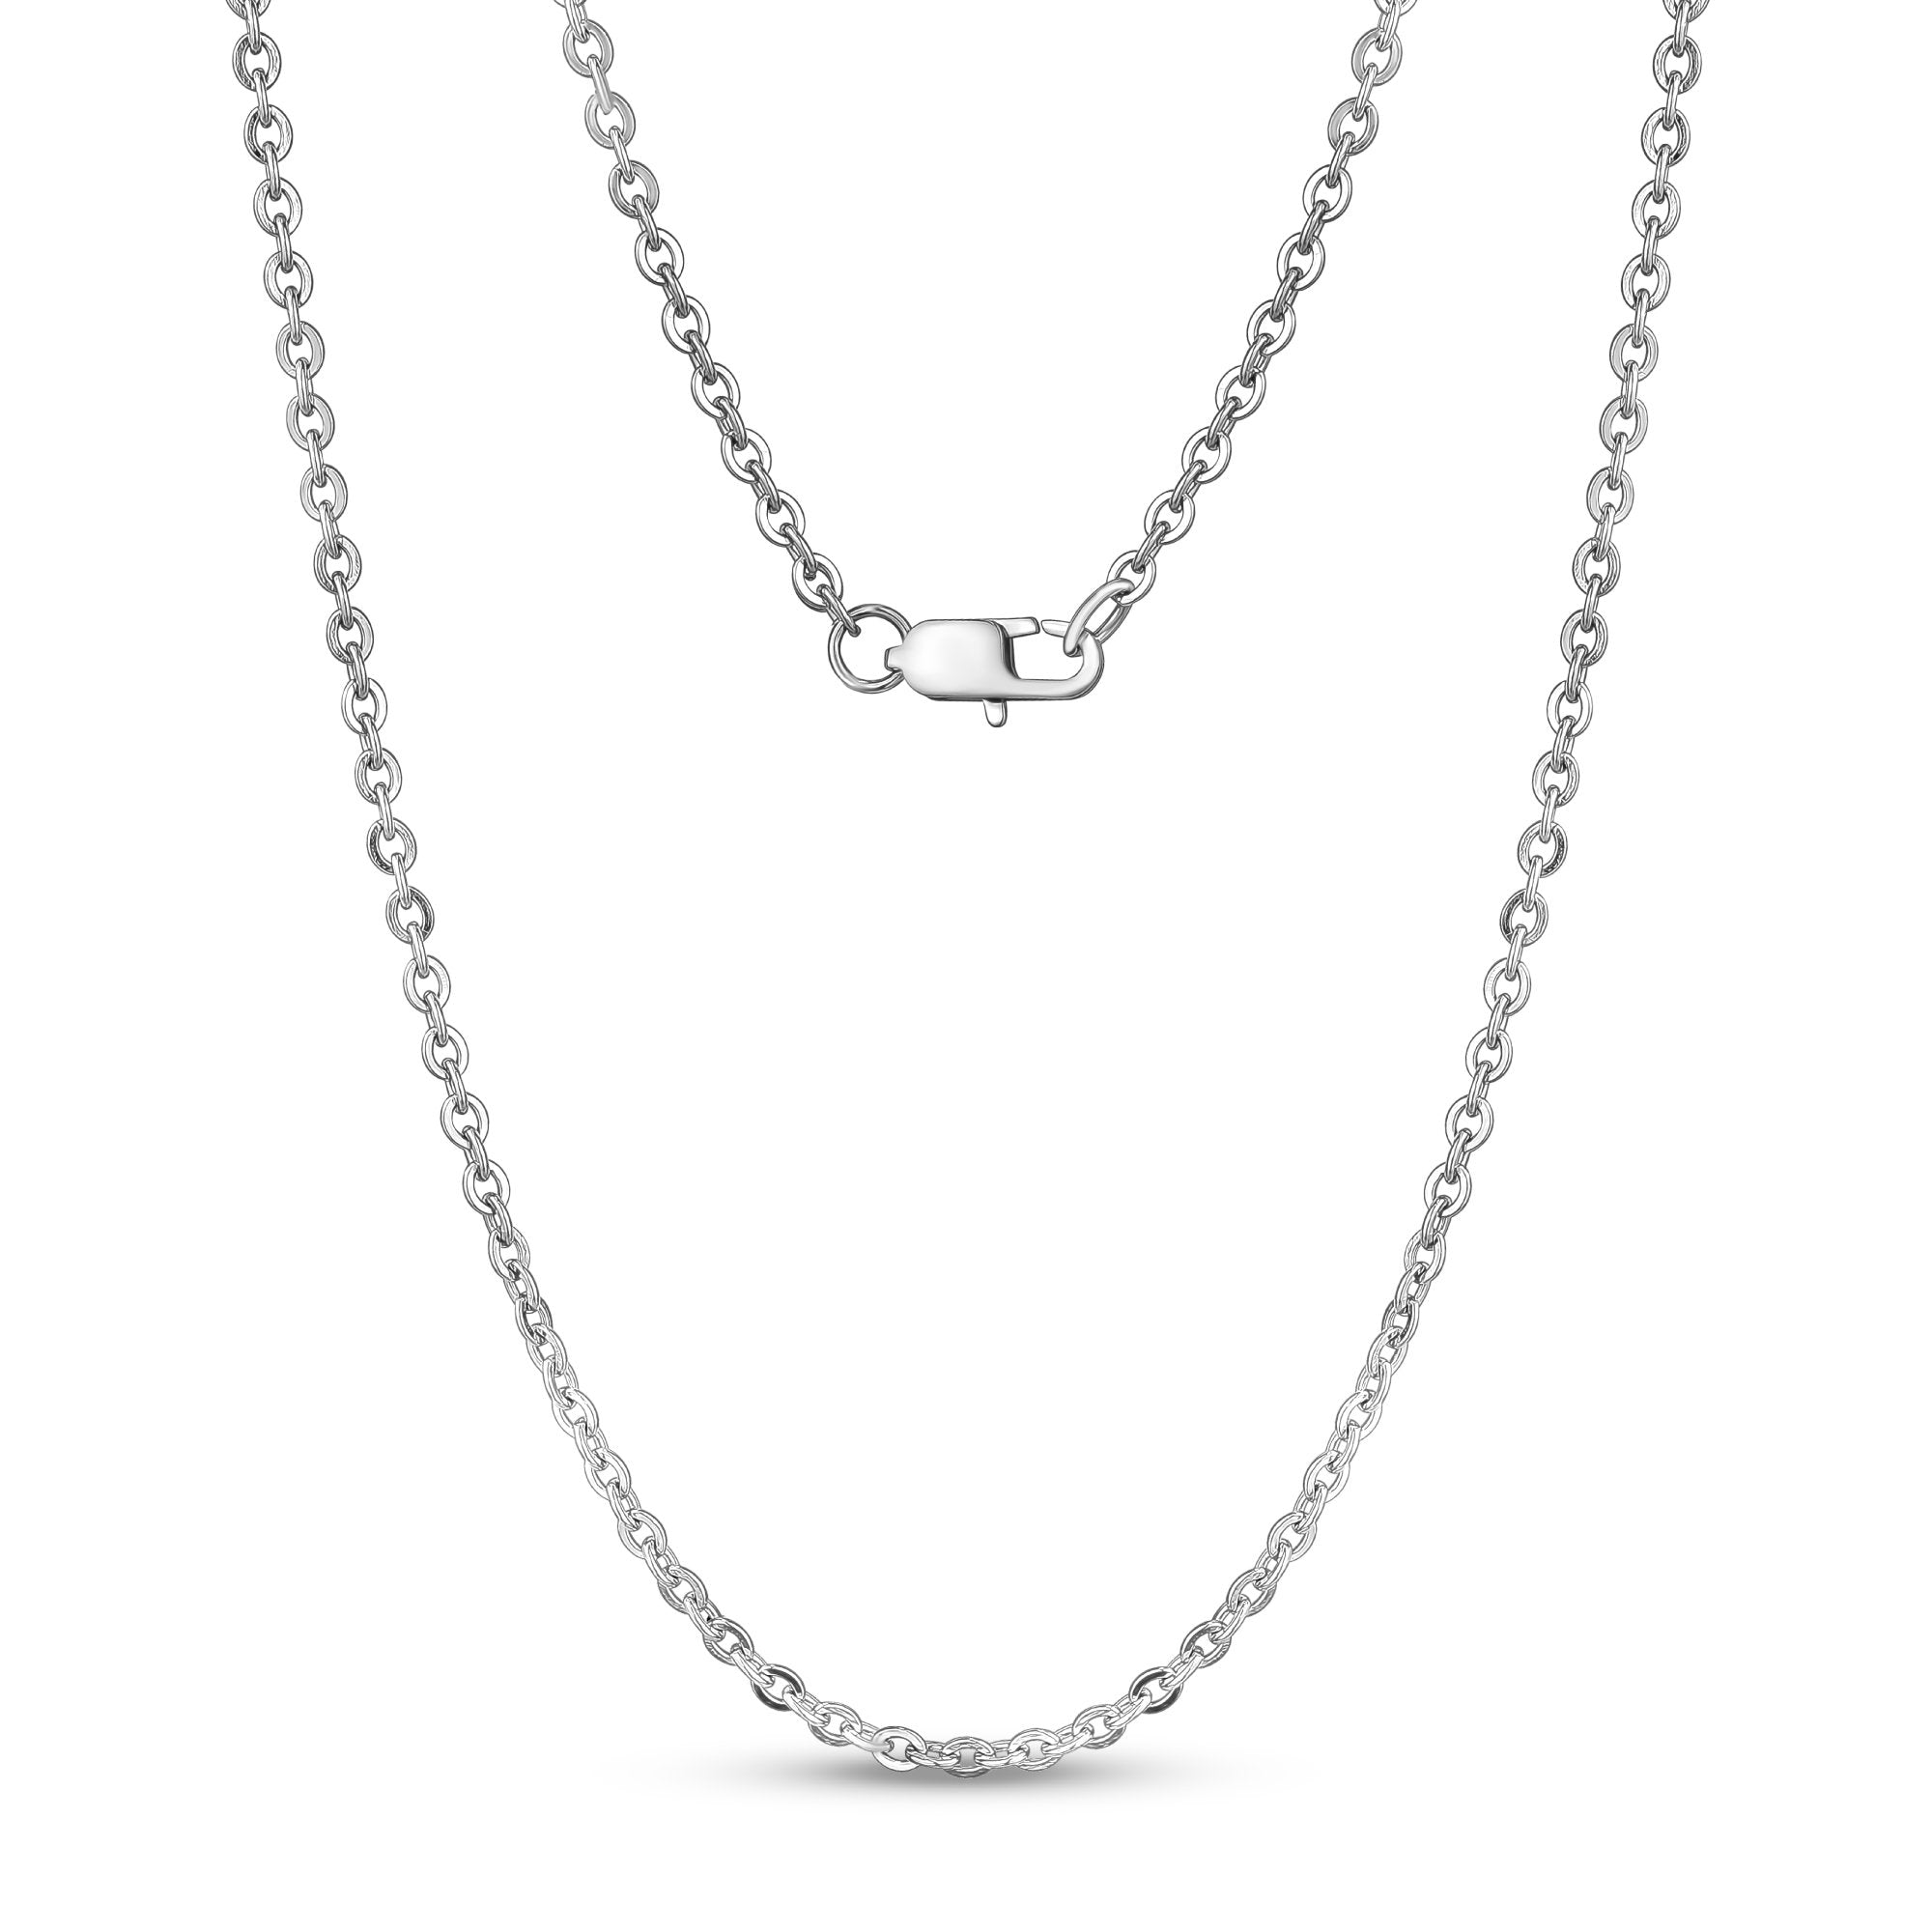 Unisex Necklaces - 3mm Flat Anchor Oval Link Steel Chain Necklace